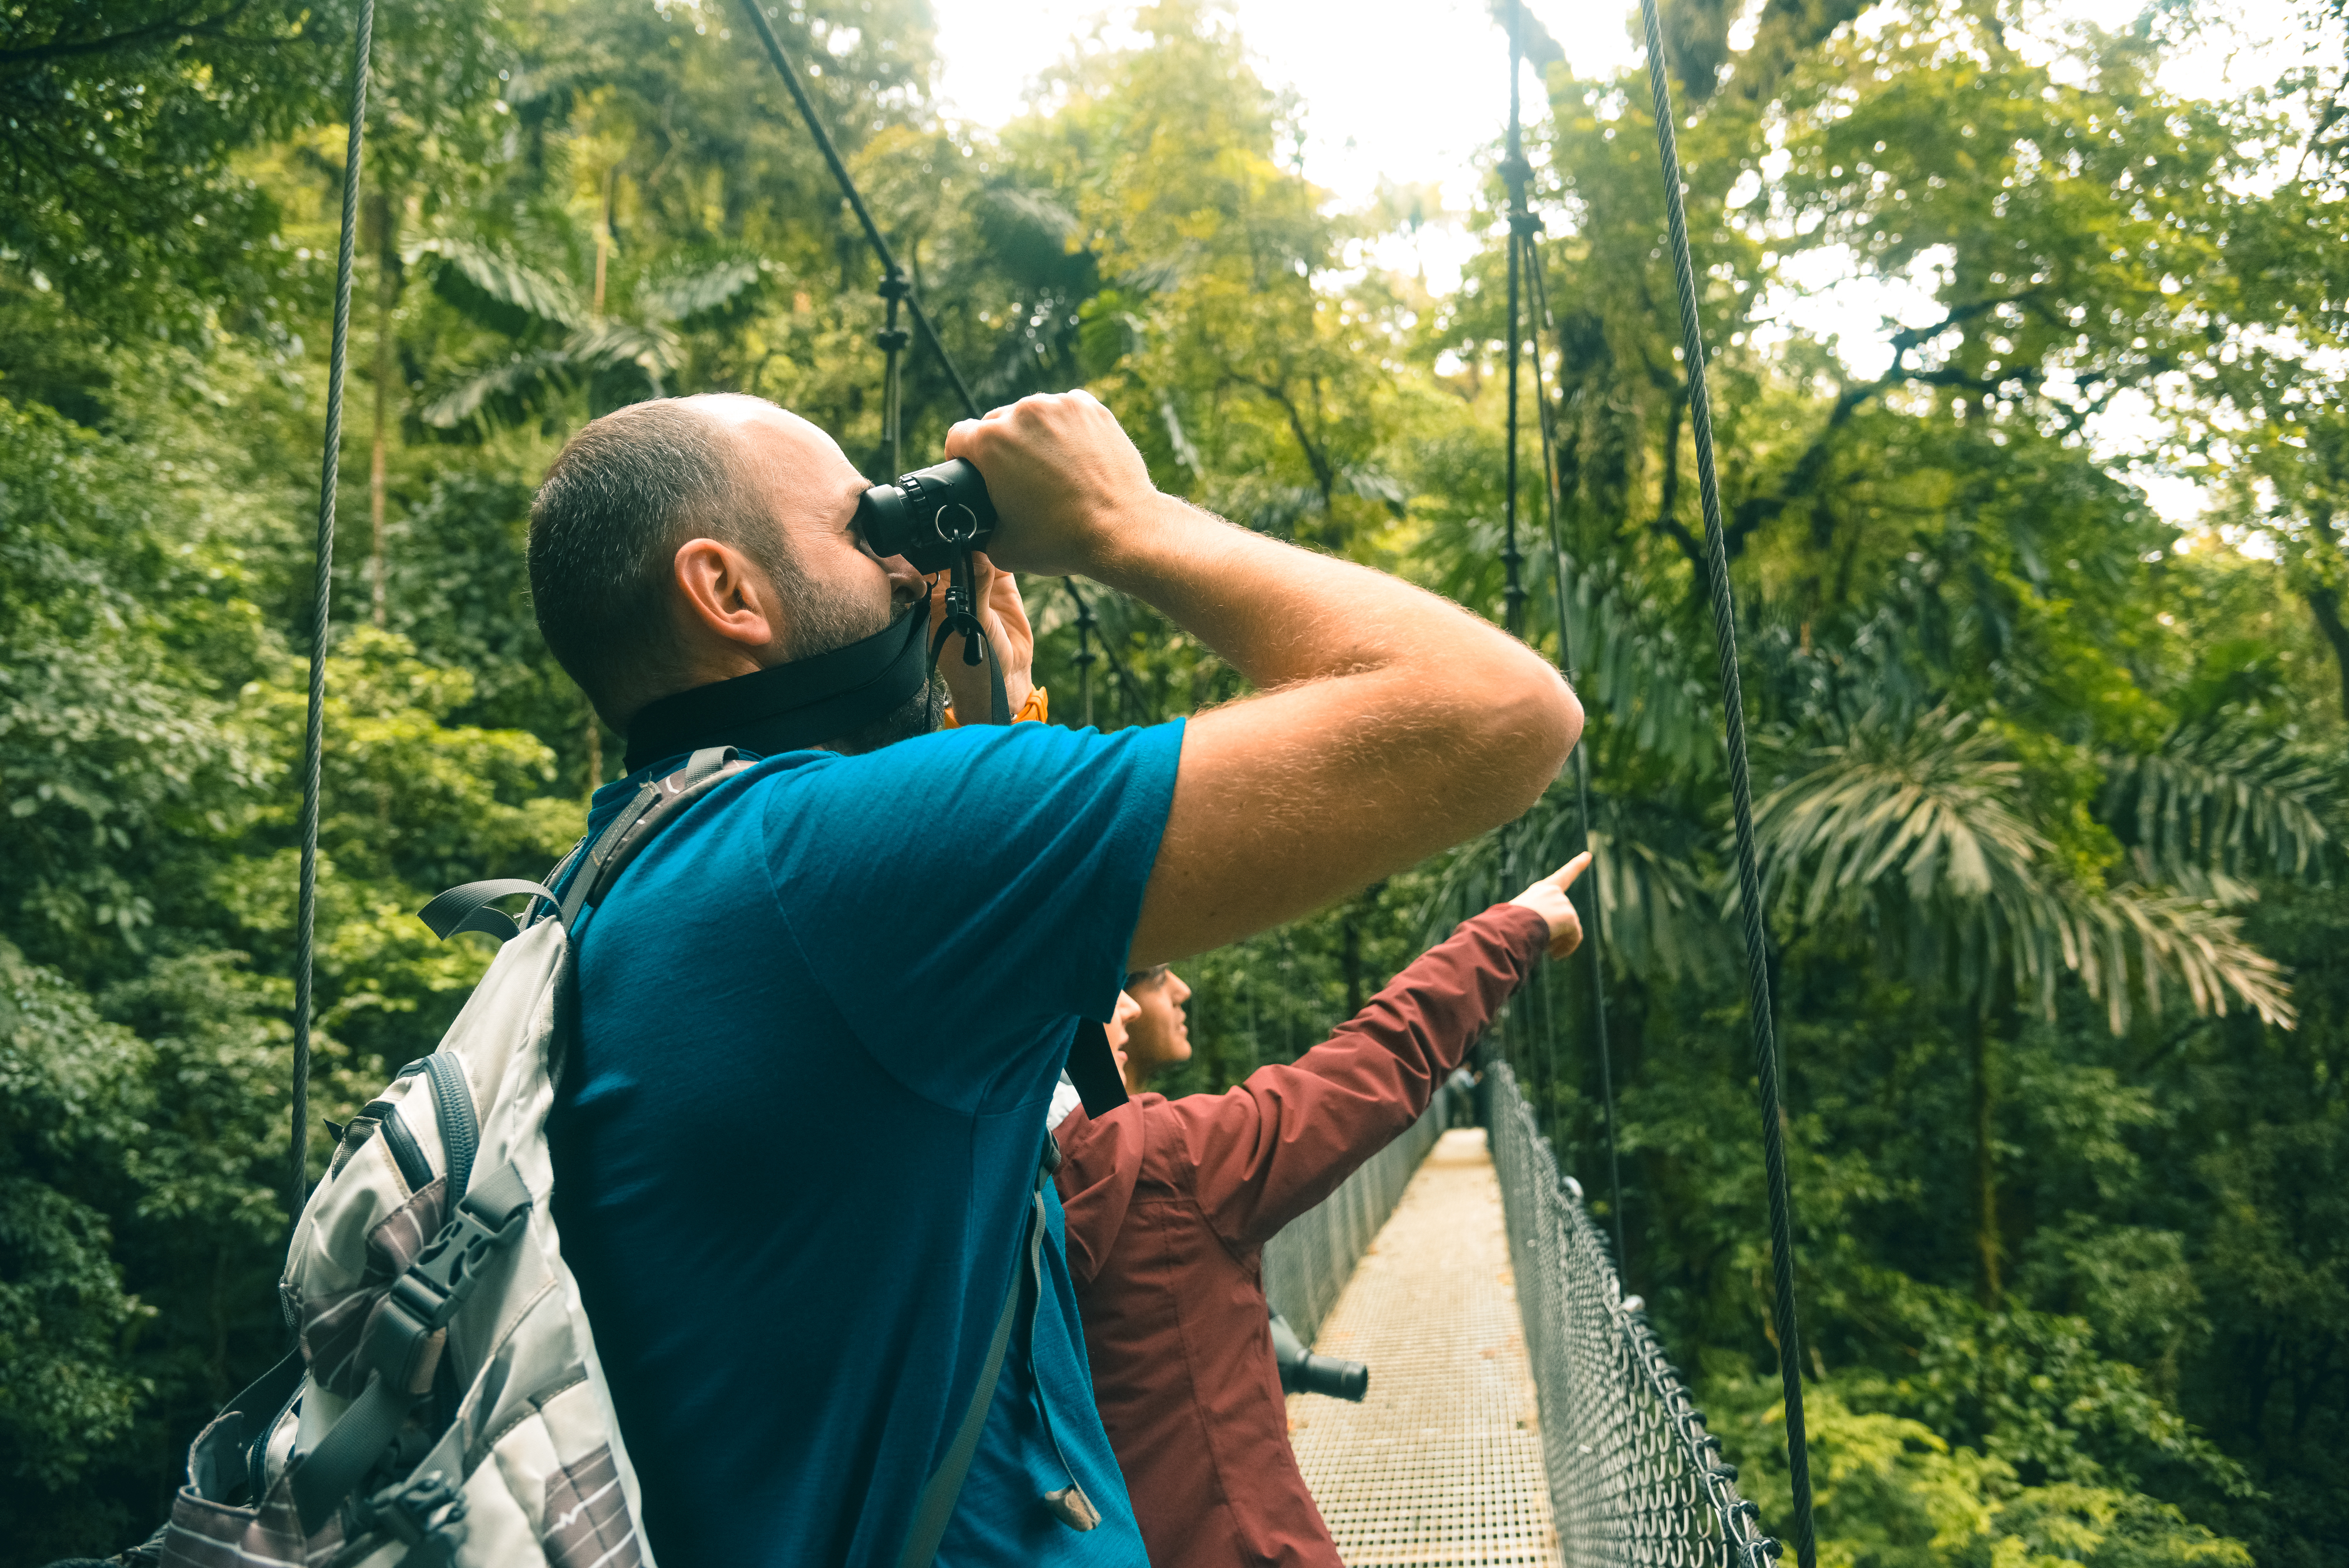 The expert eye of the guide will give you a valuable opportunity to appreciate the balance of the mystical life that happens at all times during the guided Hanging Bridges tour in La Fortuna Arenal Volcano.